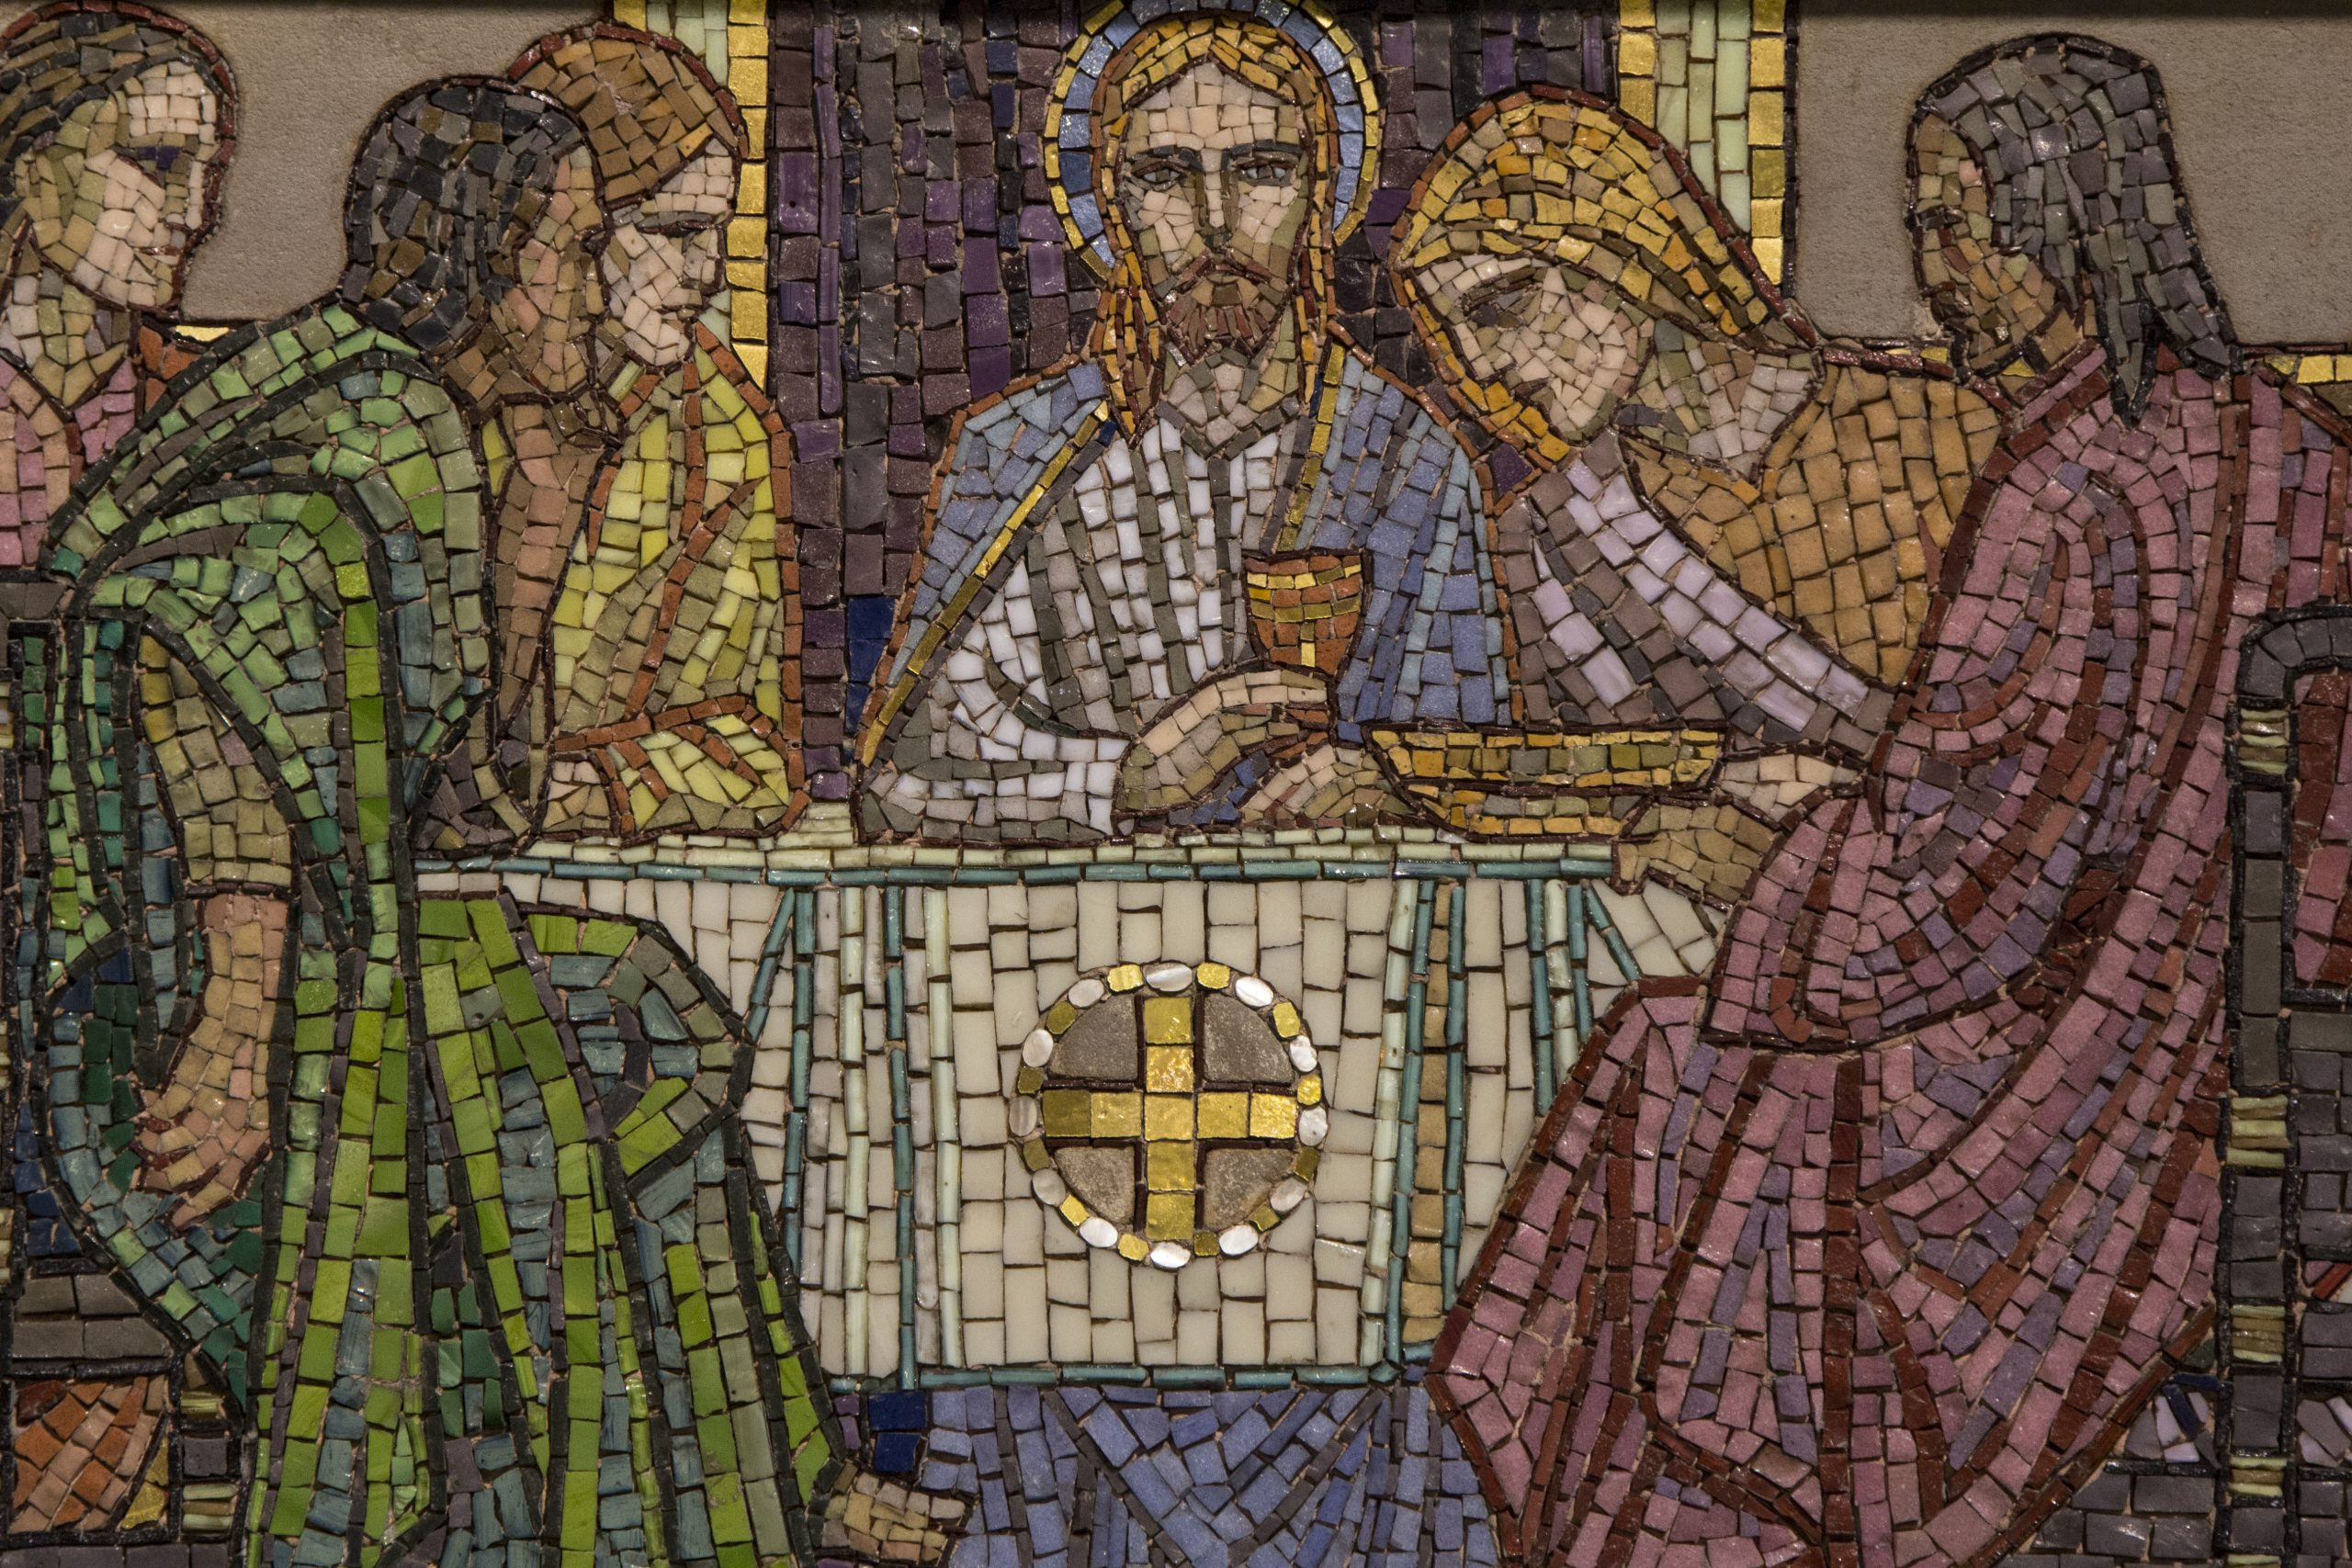 A mosaic of Christ with a plate and cup, depicting the institution of the Eucharist or Lord's Supper.